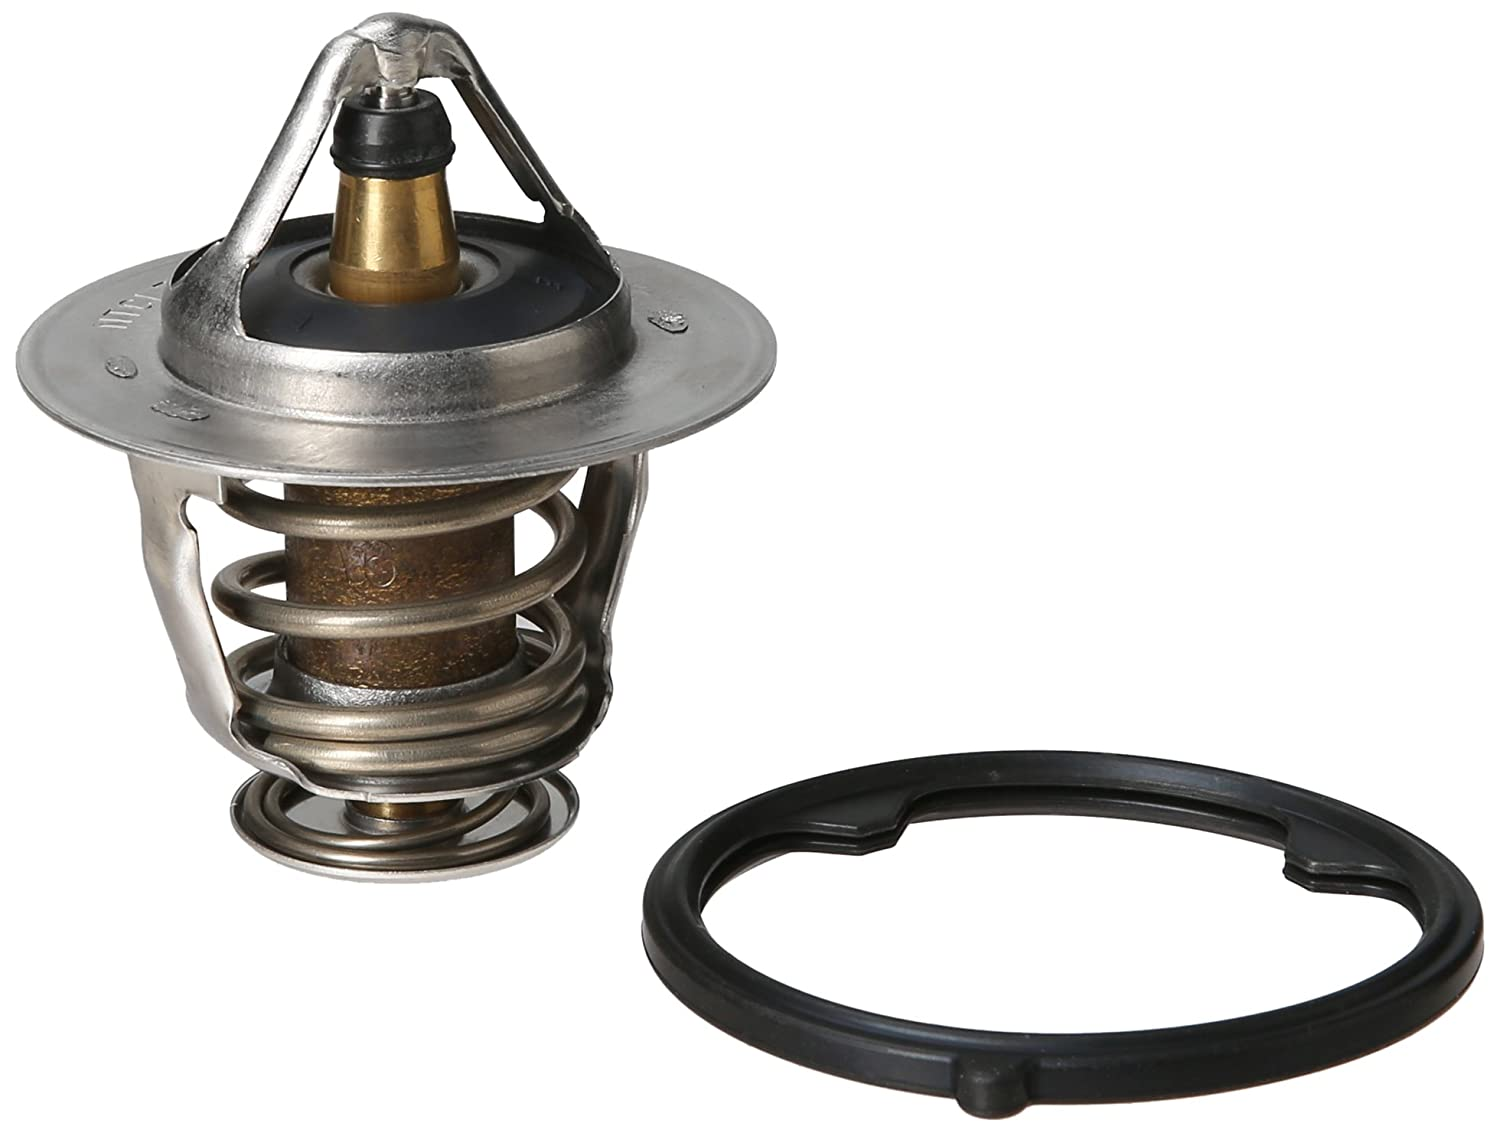 Genuine Acura 19301-P8E-A10 Thermostat Assembly